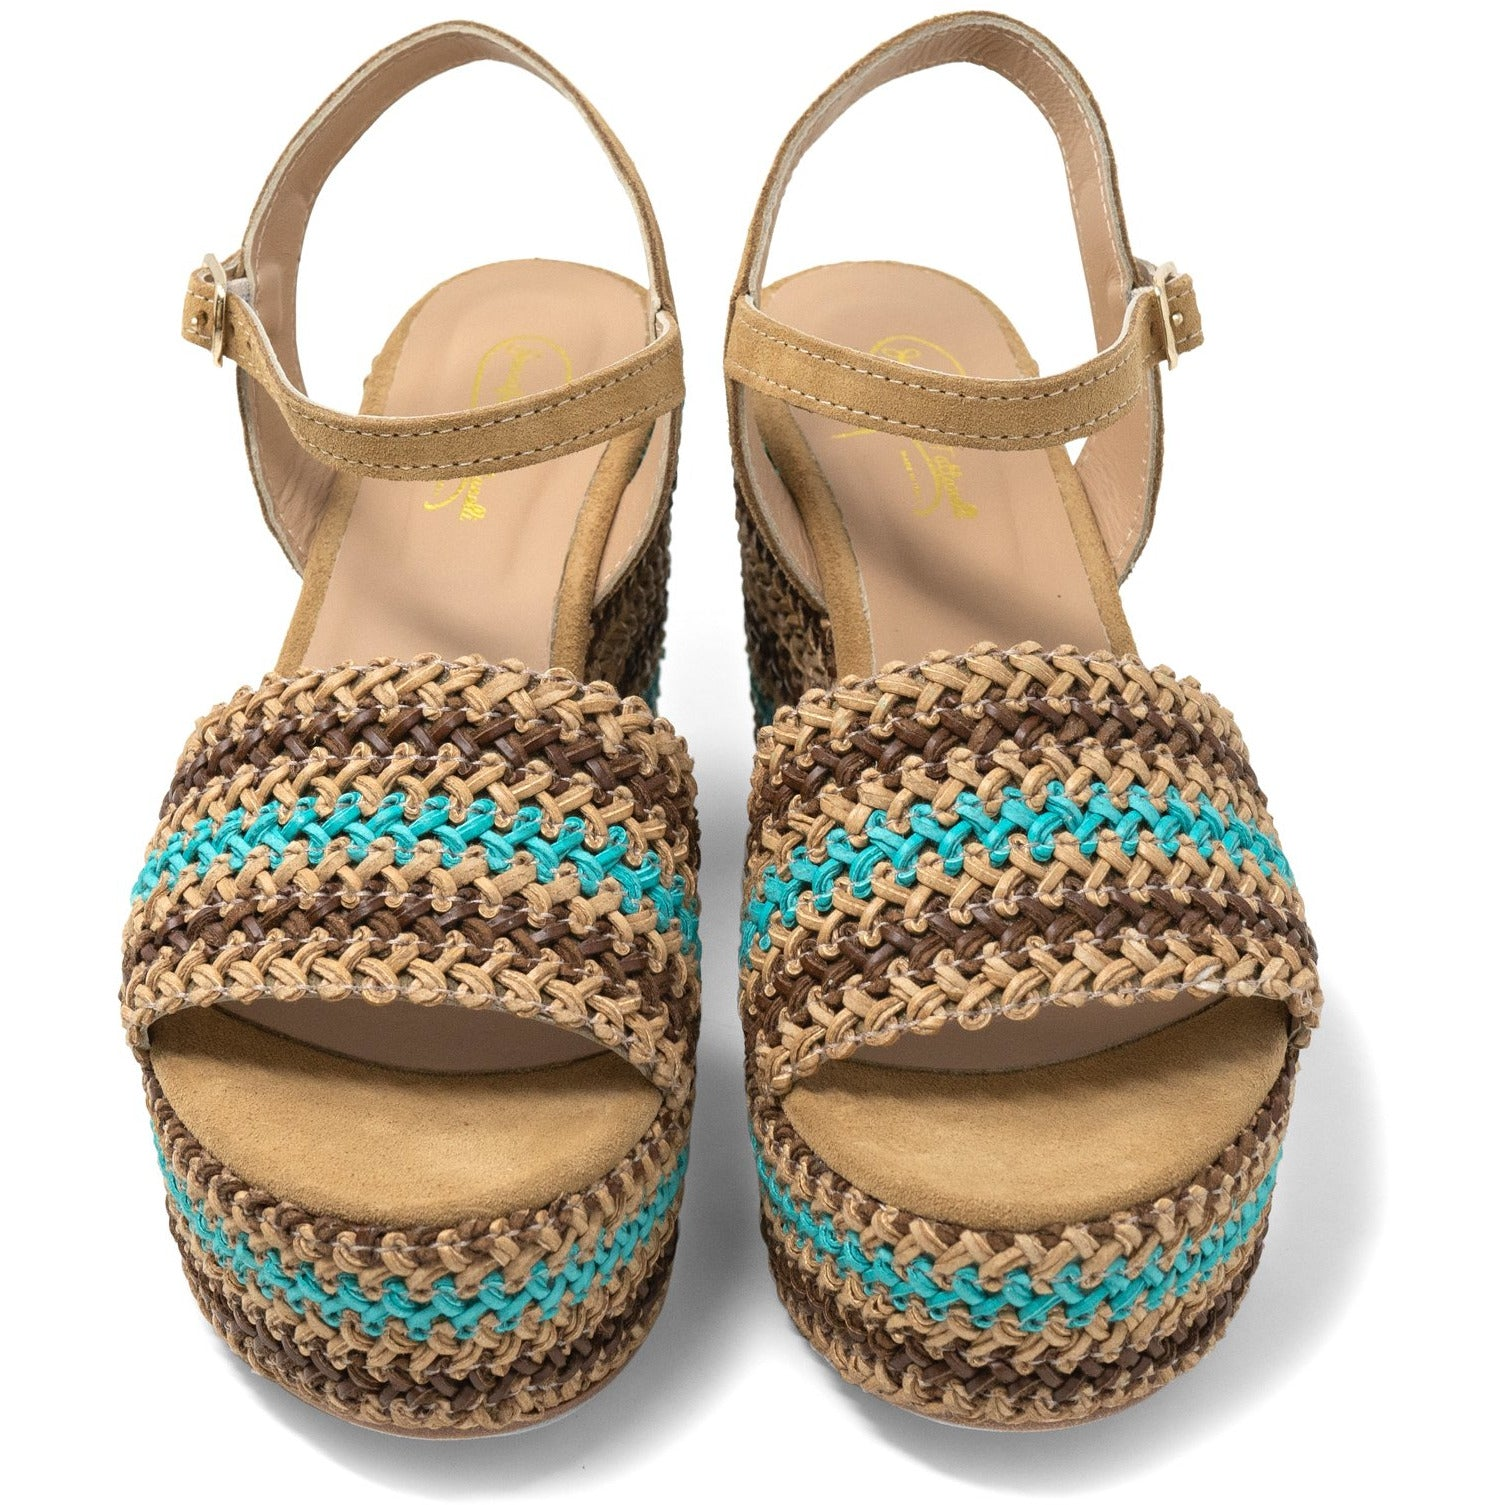 Women Platform Wedge Sandals in Beige and Green - Jennifer Tattanelli